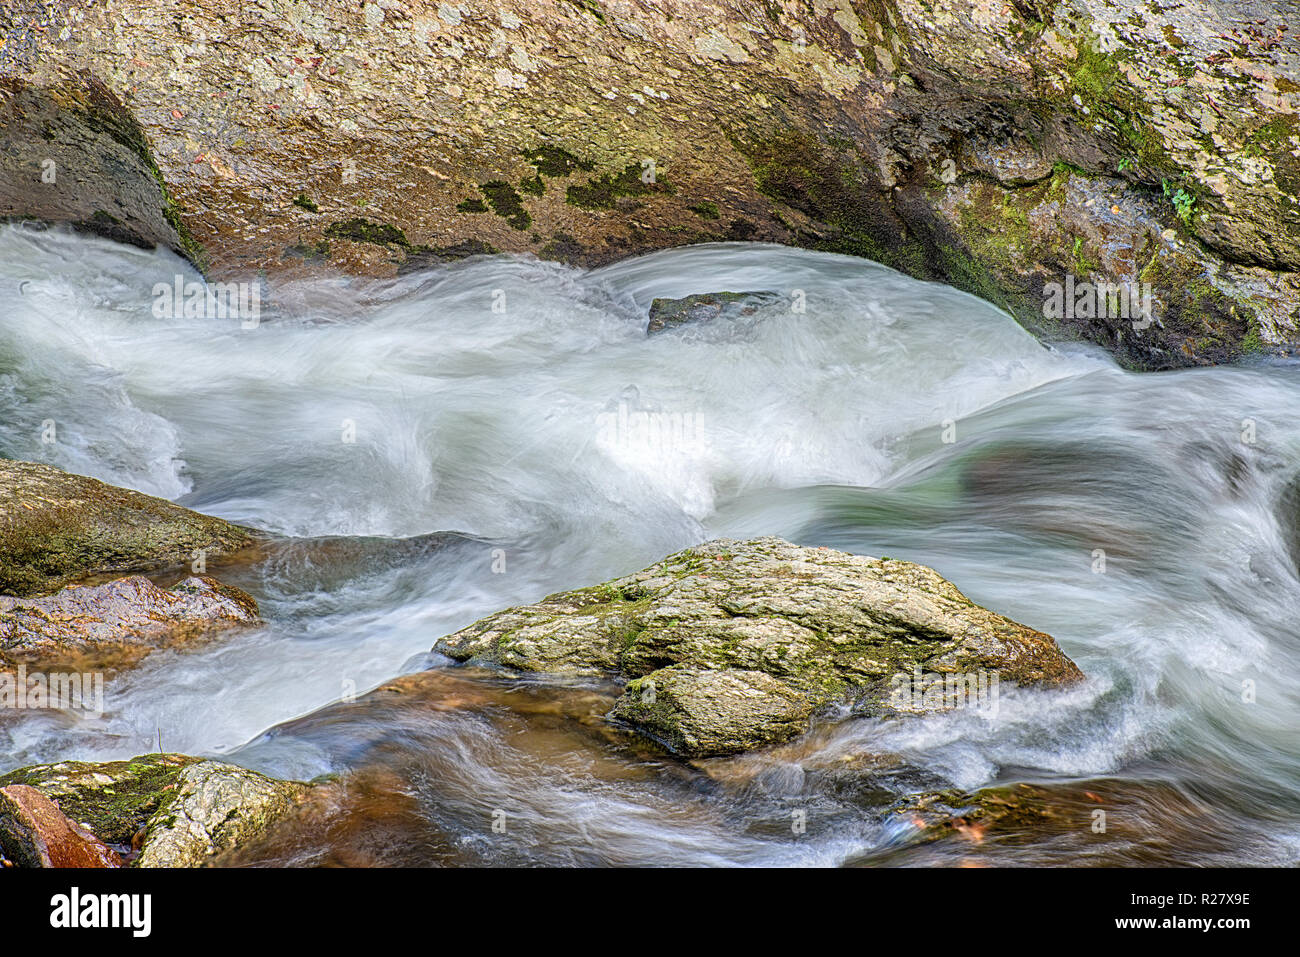 Horizontal shot of some beautiful Swirling Rushing Water in a Tennessee Mountain Stream. - Stock Image